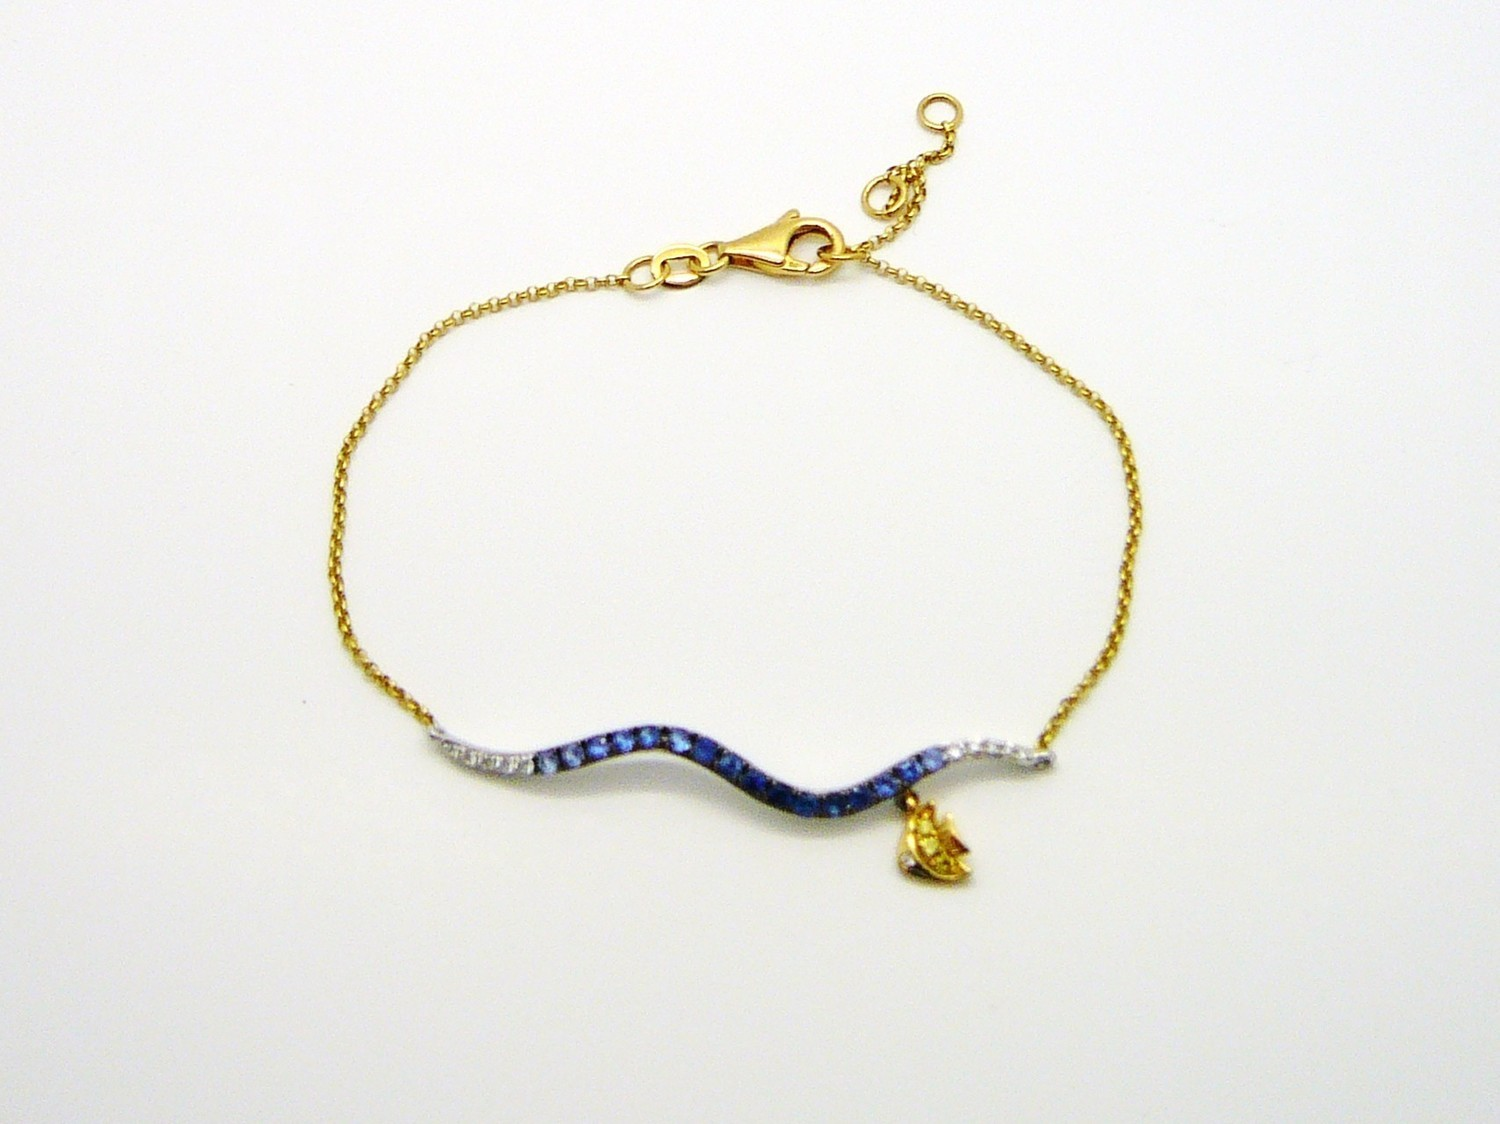 WAVE / FISH BRACELET,  14 Kt. Gold / Blue Sapp.